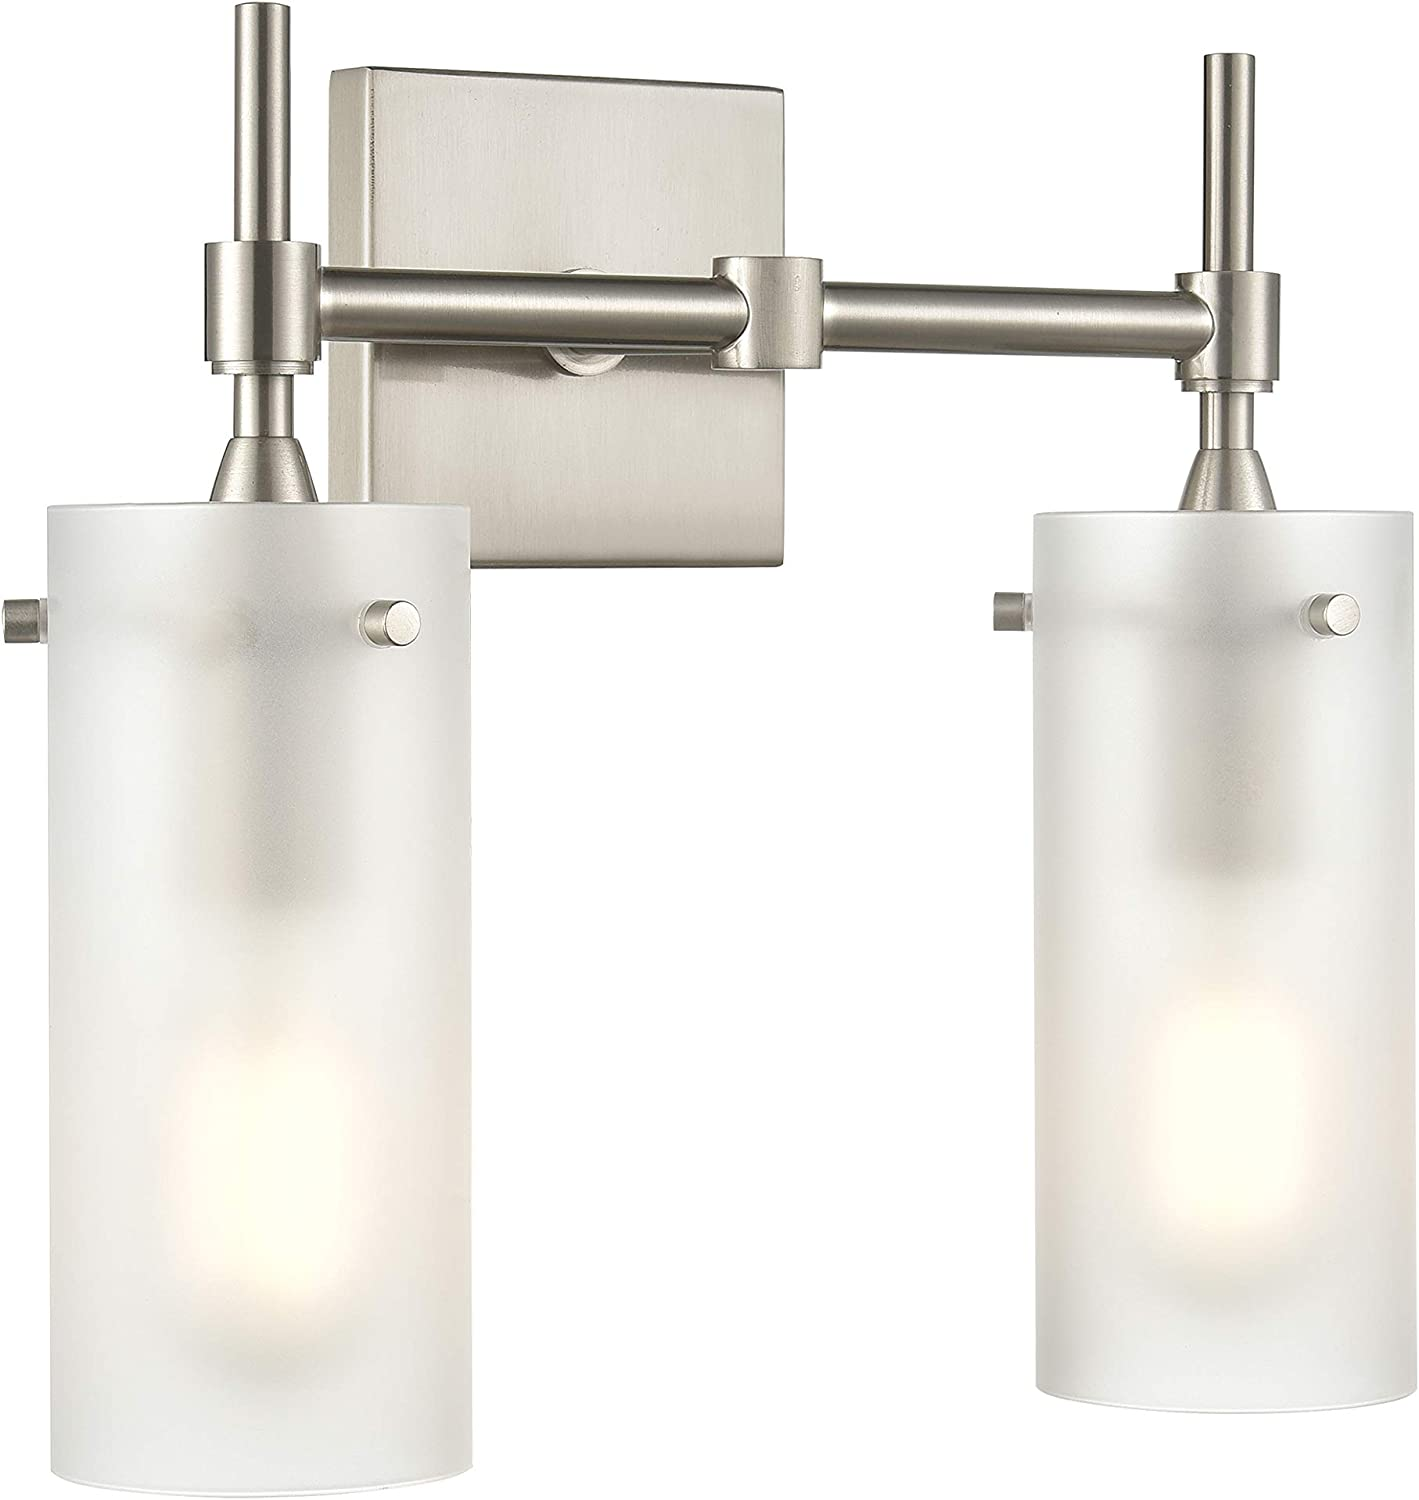 Effimero 2 Light Bathroom Vanity Light Brushed Nickel Hallway Wall Sconce, Frosted Glass Shade LL-WL32-FRST-1BN